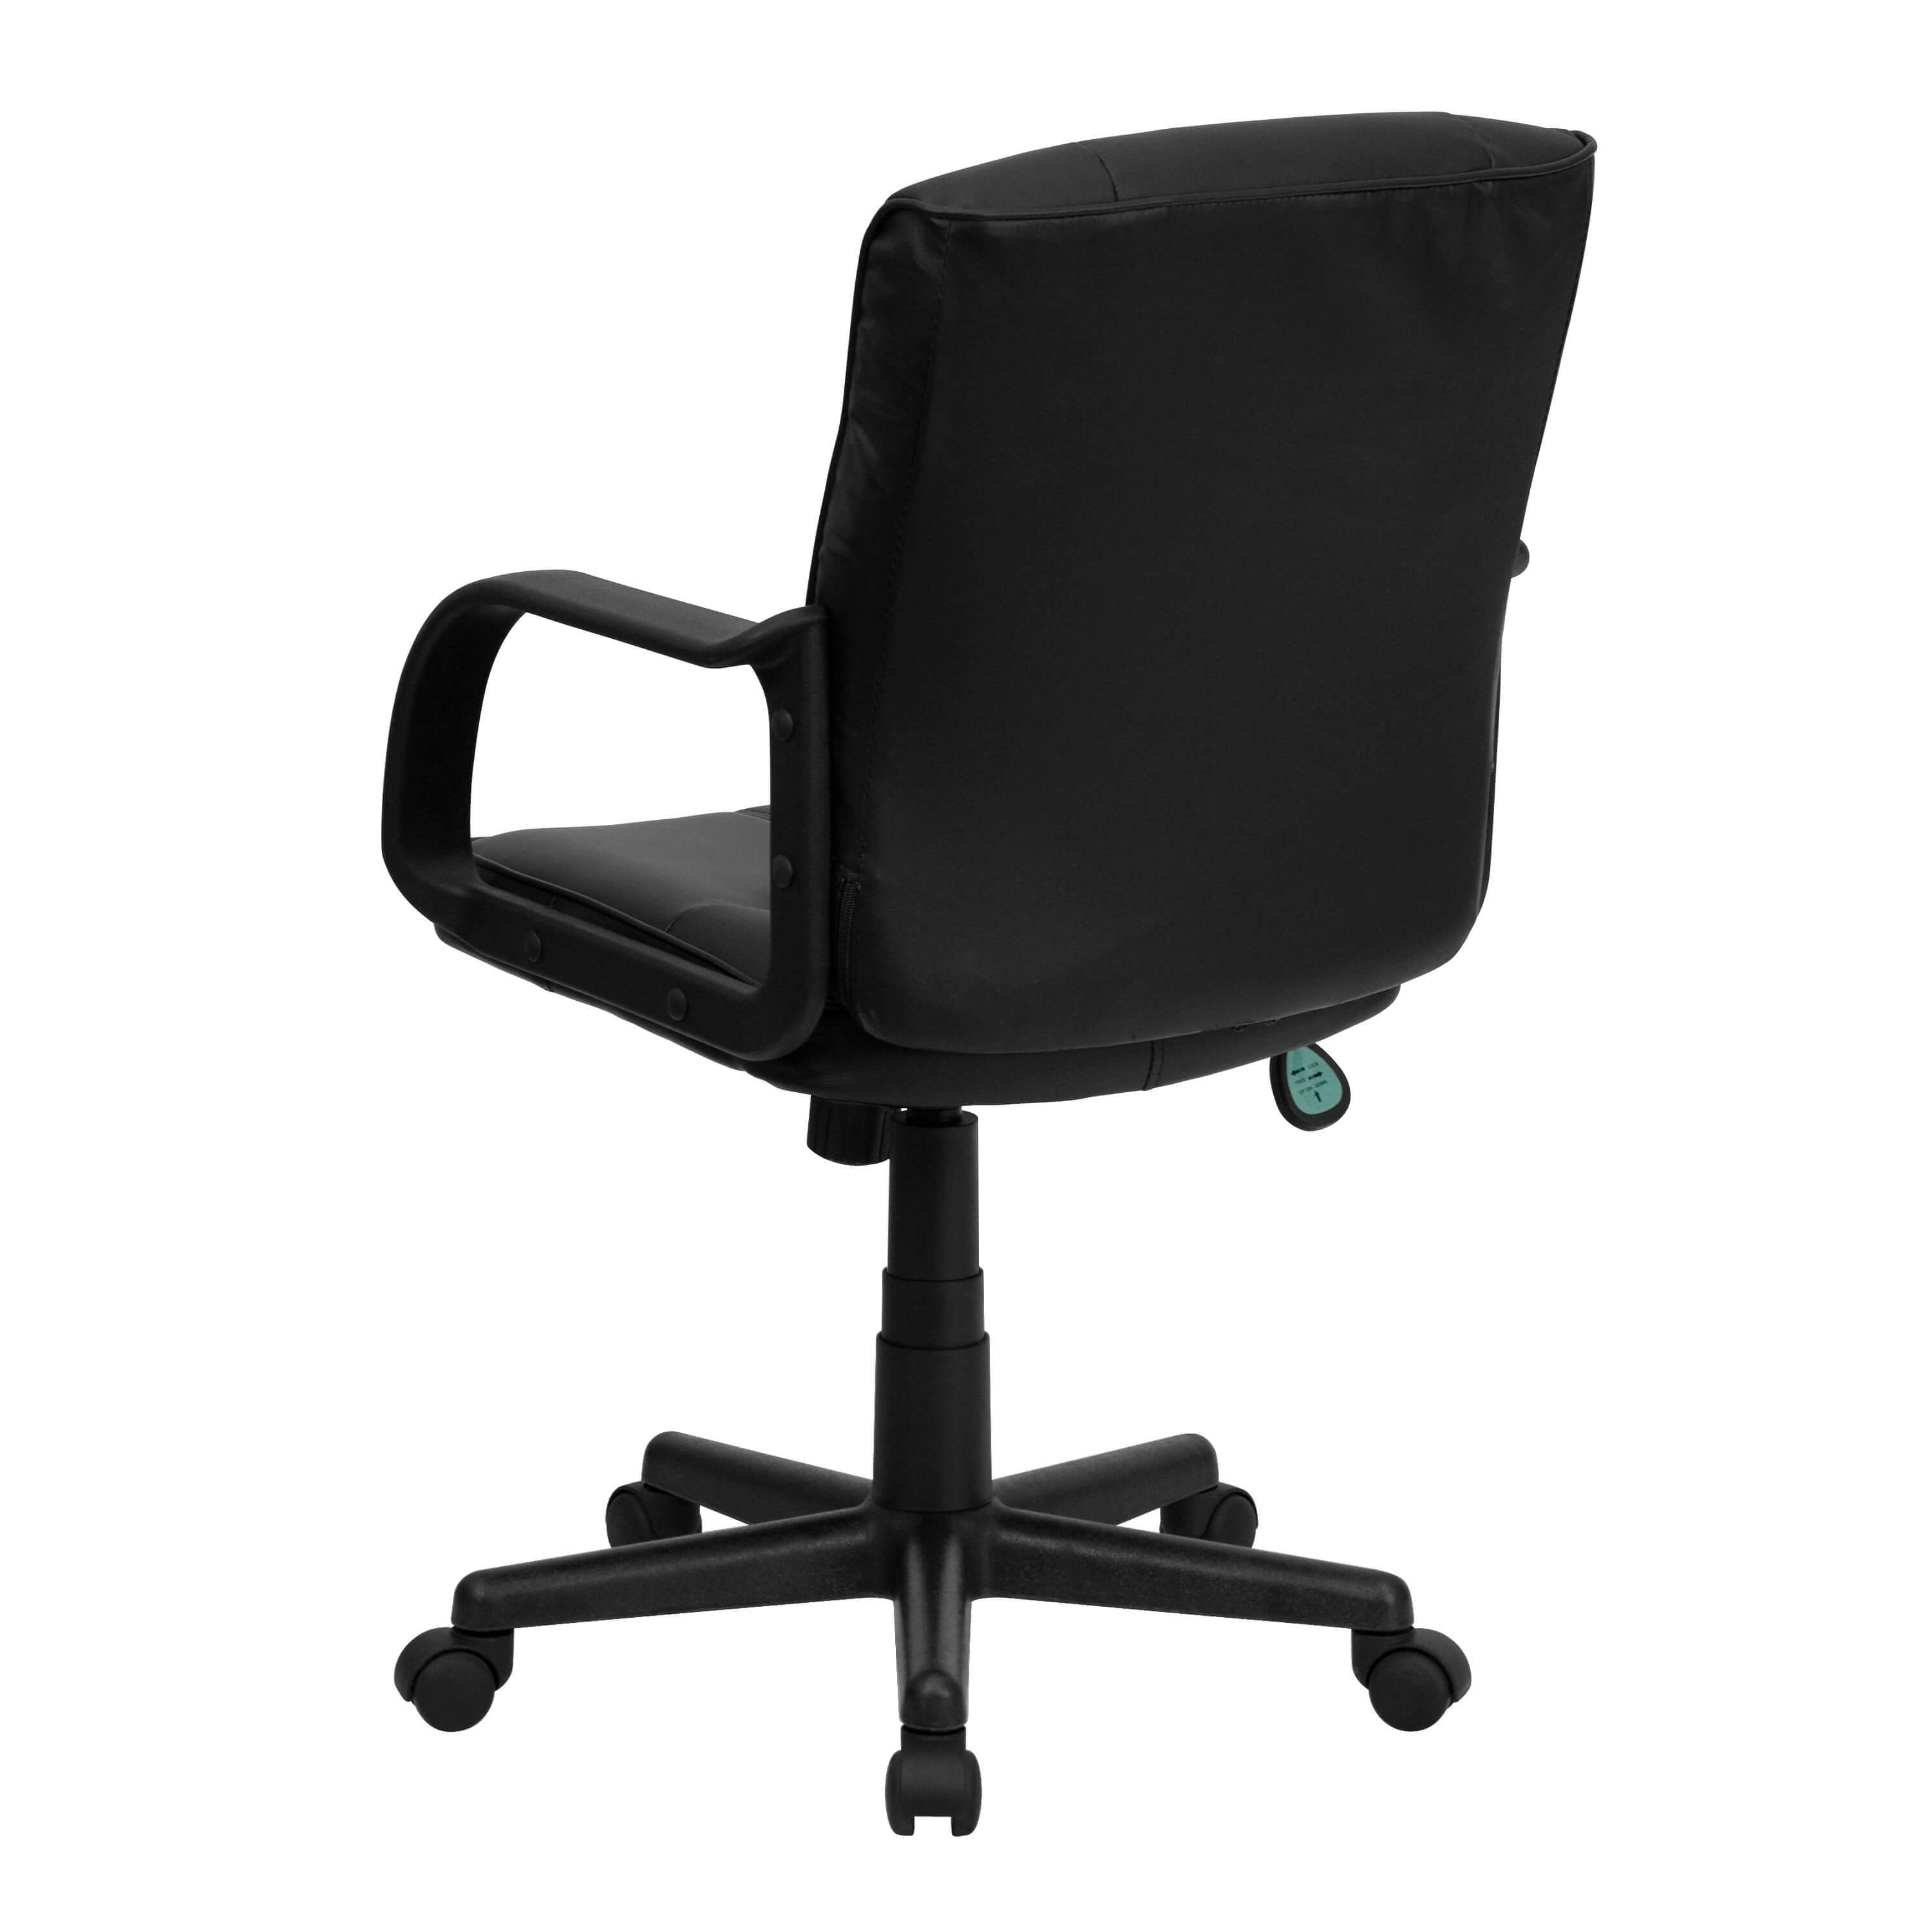 Office chair back view - Black Leather Office Chair Rear View